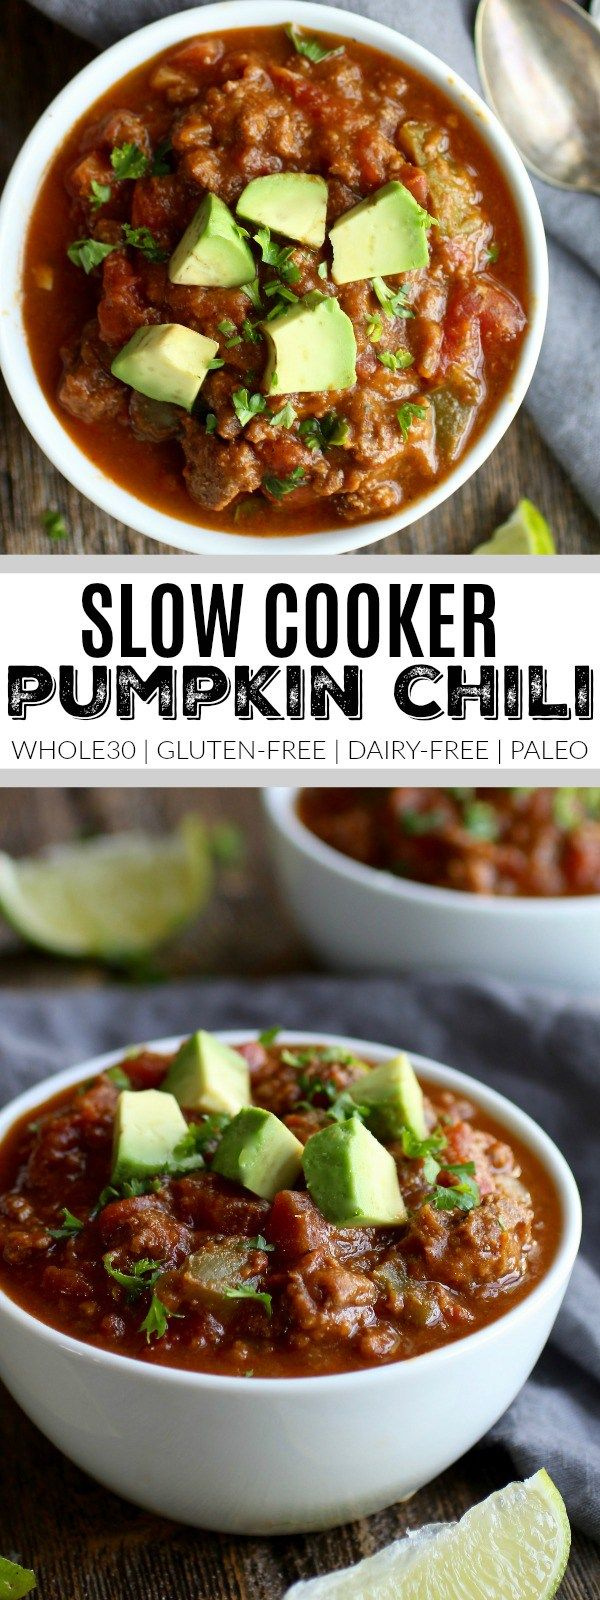 This hearty beanless chili is a crowd pleaser - and it's Whole30-friendly! The pumpkin adds a touch of sweetness, fiber, and vitamin A and it's a great way to sneak more veggies into your diet. Feel free to spice it up by adding more chili powder, jalapenos or cayenne pepper if you like it spicy.